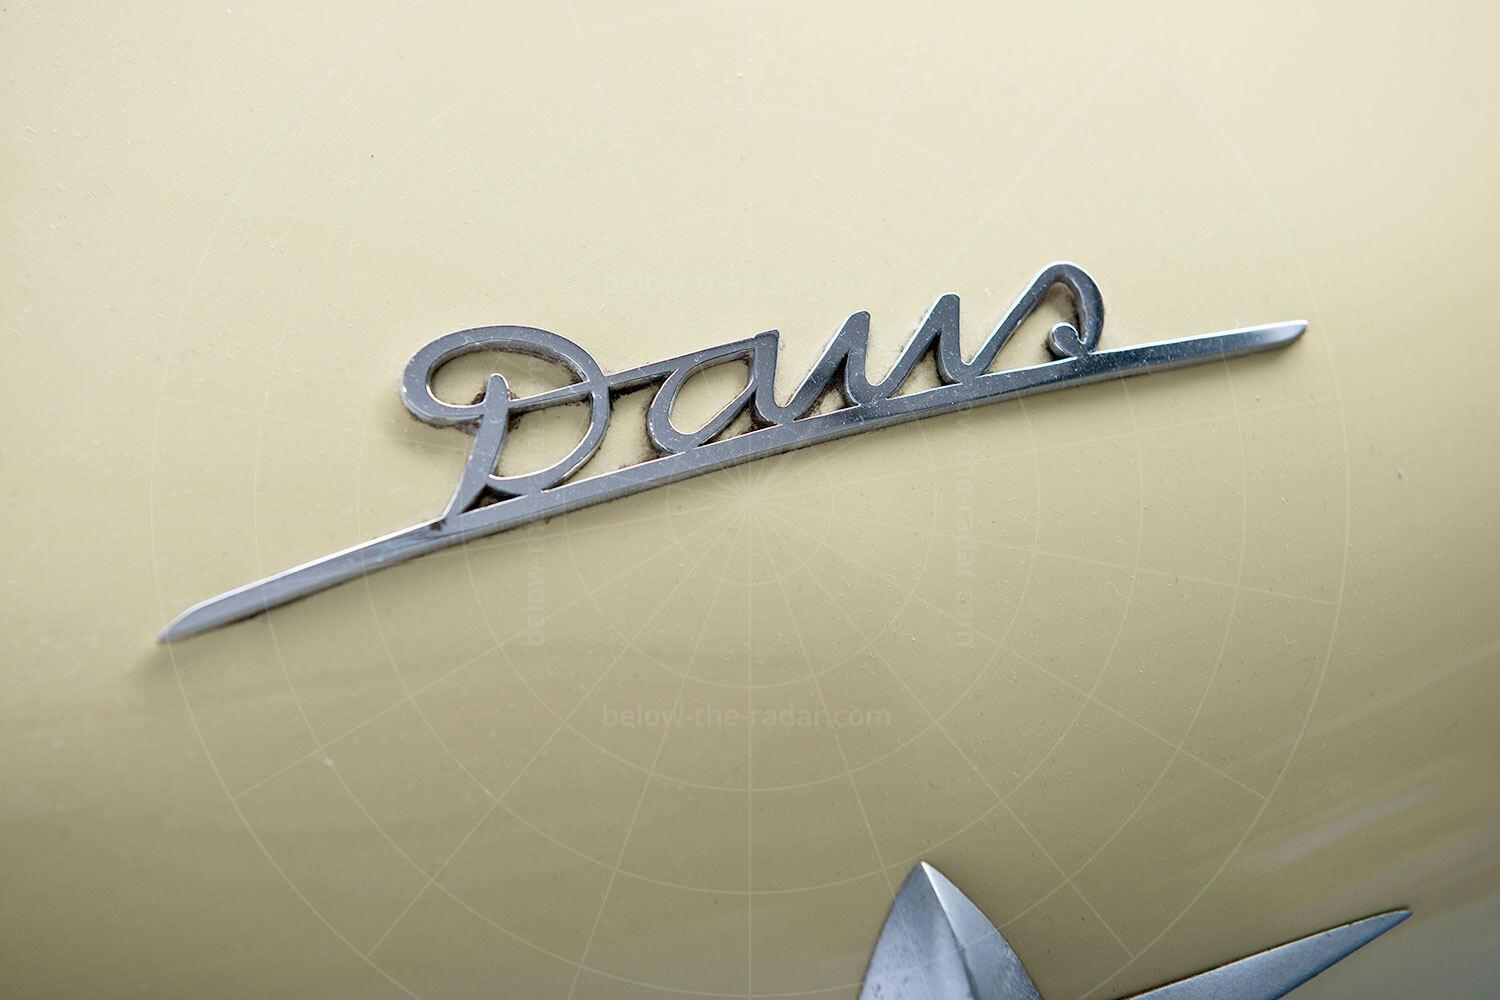 Daus microcar prototype badge Pic: RM Sotheby's   Daus microcar prototype badge